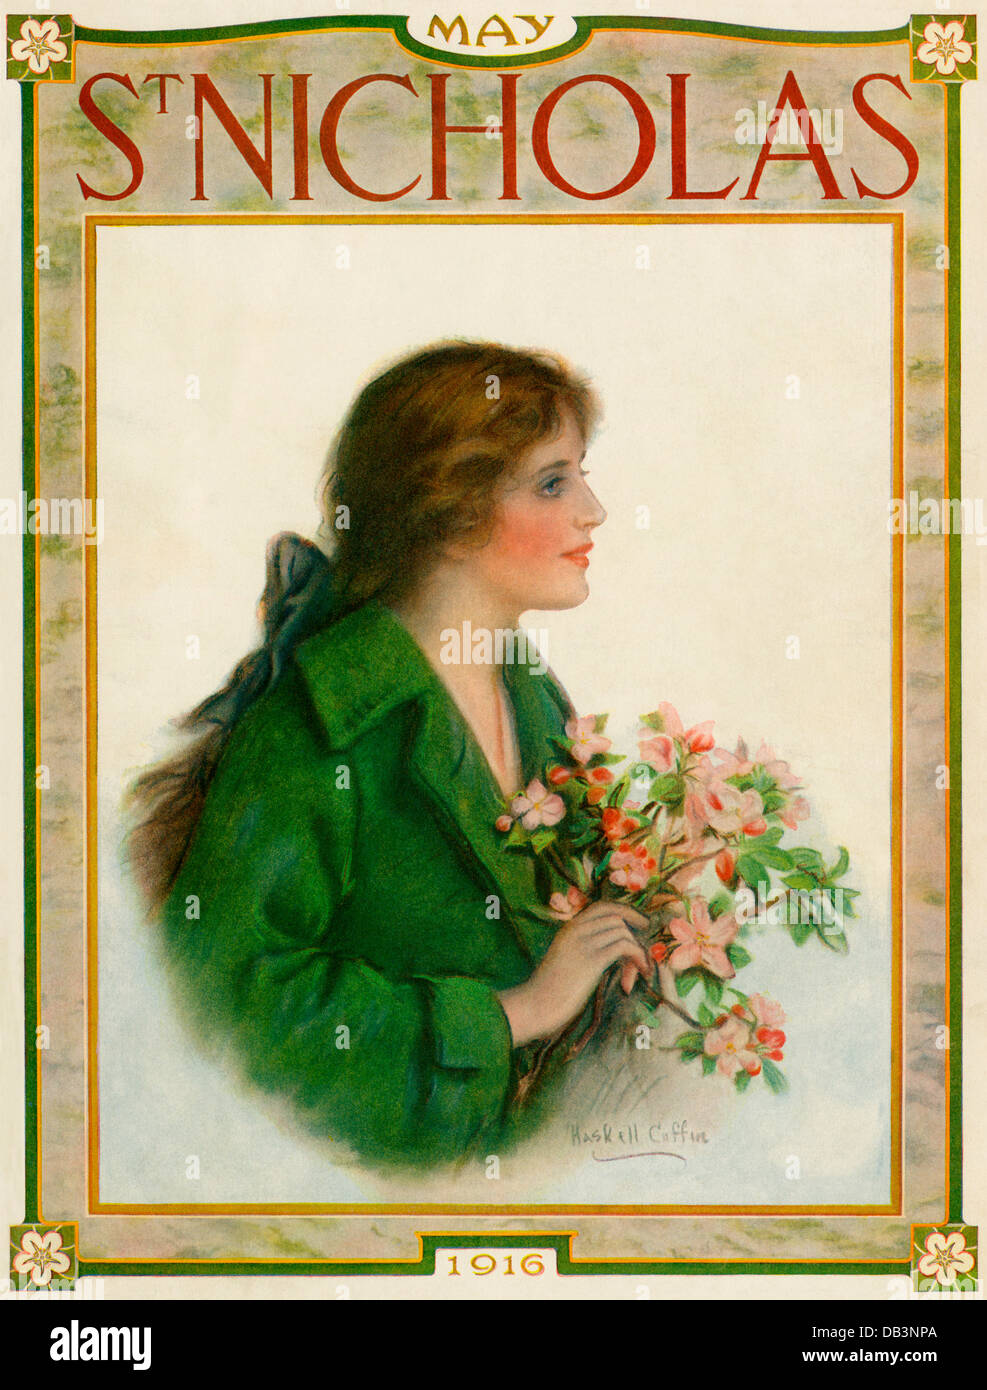 St Nicholas Magazine cover, May 1916. Color halftone illustration - Stock Image